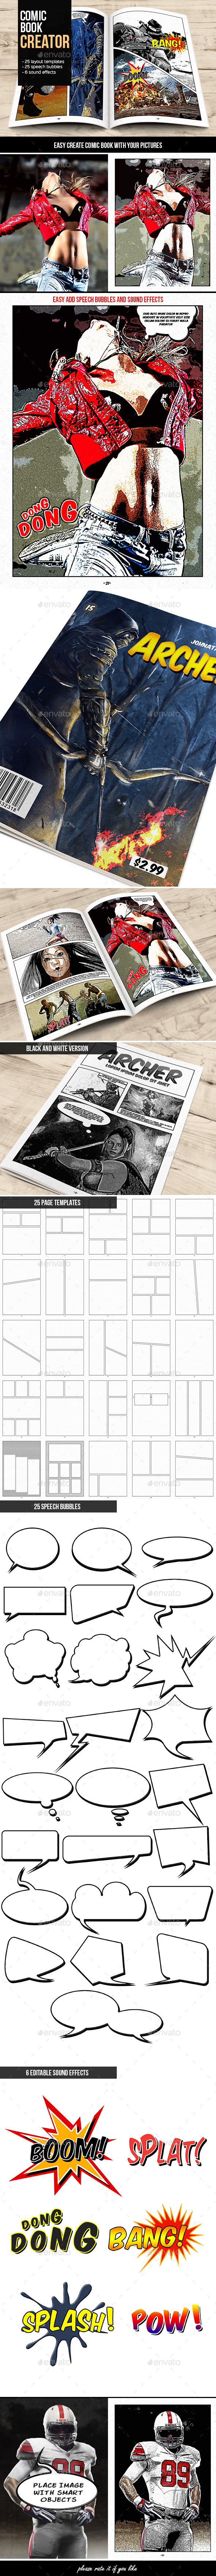 GraphicRiver Comic Book Creator 10600615